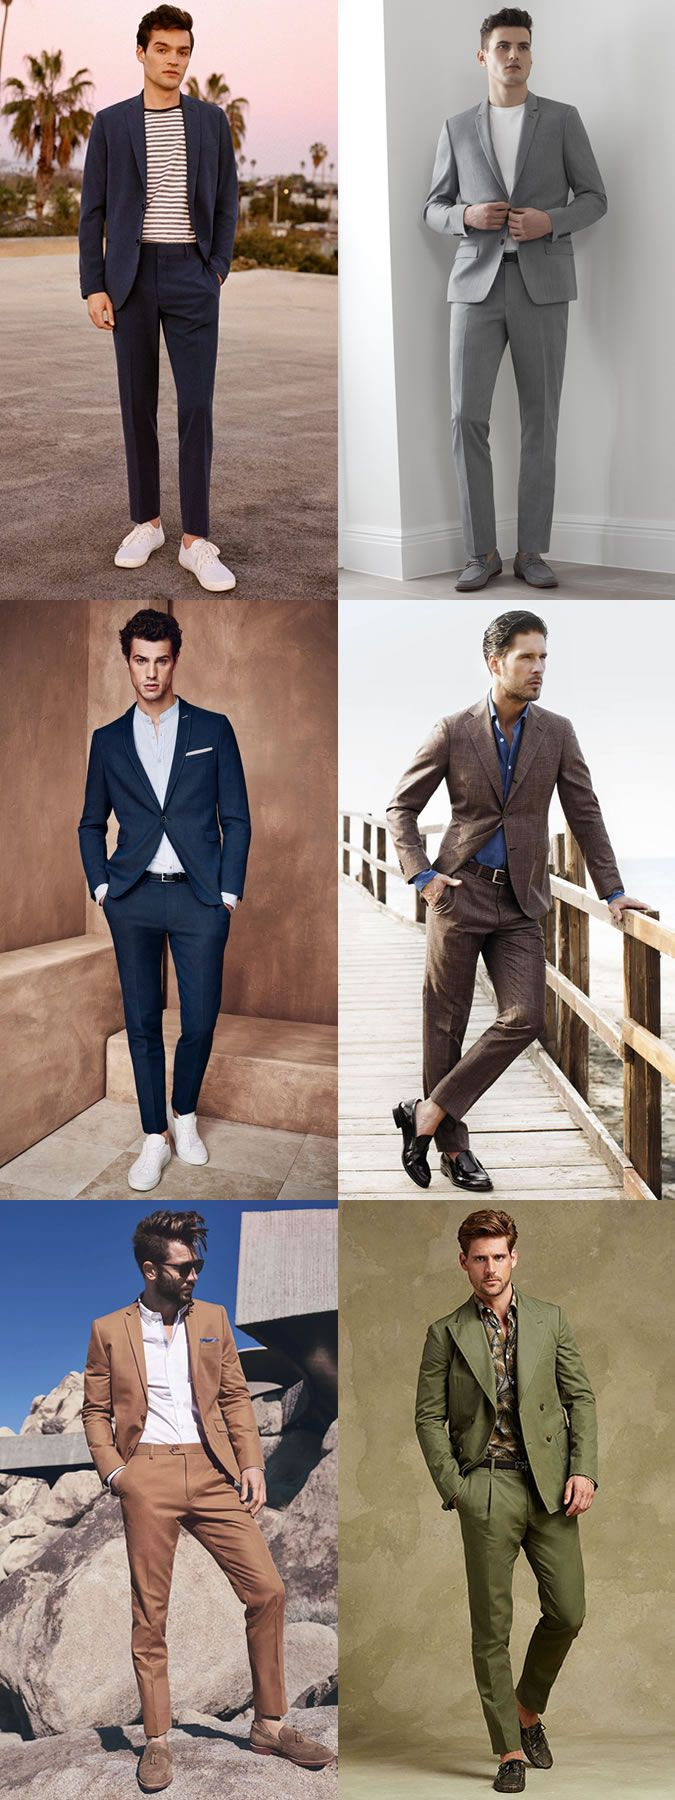 Men's Lightweight Summer Suits Outfit/Styling Inspiration Lookbook http://www.99wtf.net/young-style/urban-style/what-is-urban-fashion/